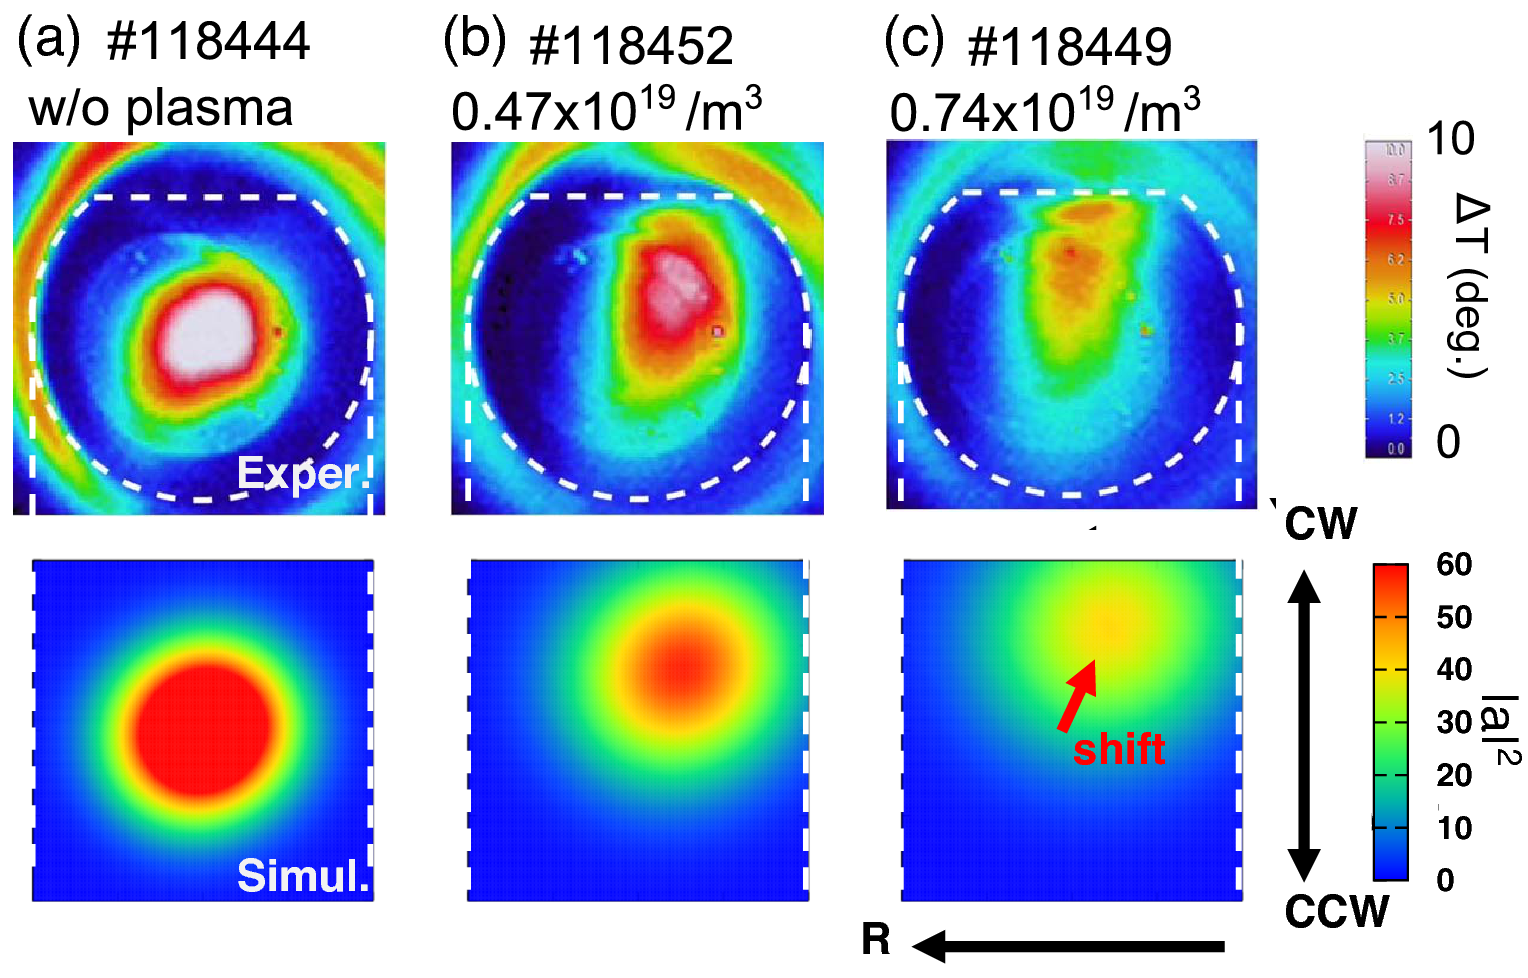 Intensity profiles of ECW on the target plate facing on the ECRH antenna via plasma in LHD, that are experimentally obtained by the direct measurement system and numerically simulated by PARADE. The shift of beam profile position due to the density increase observed experimentally are captured by PARADE. Experimental figures are reproduced from Ref. [d].